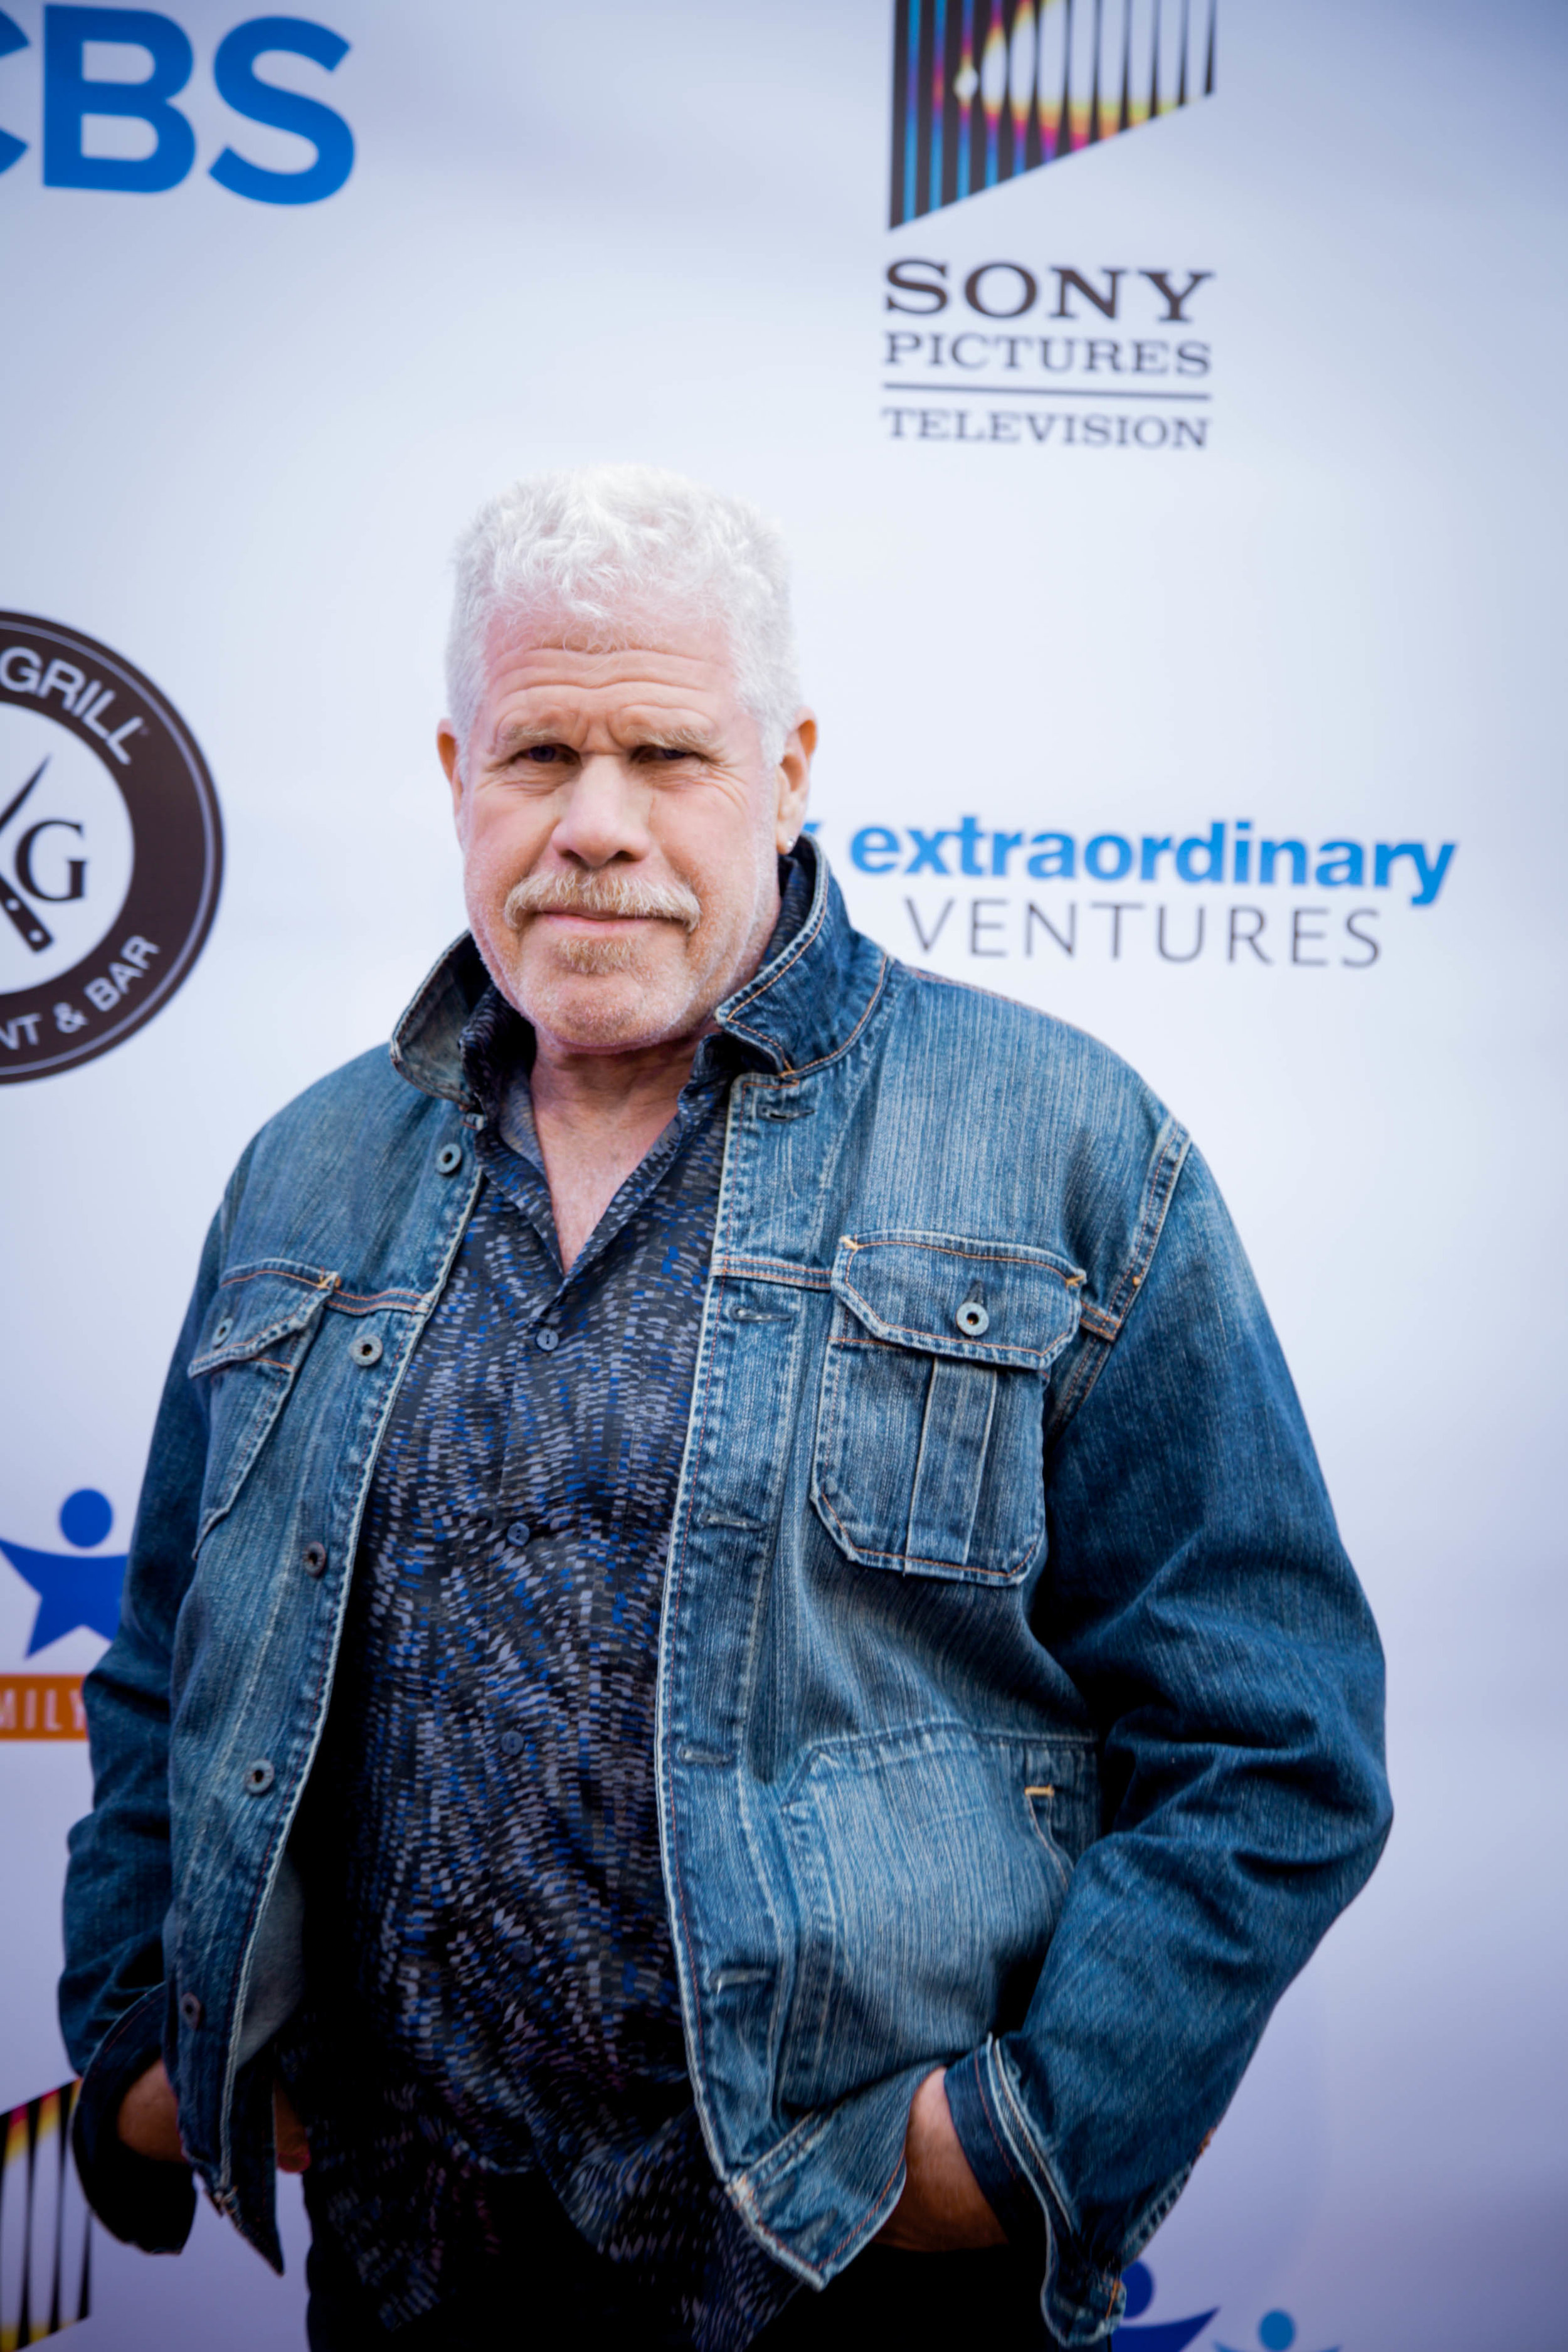 Ron Perlman. Photo by Erin Poole for Average Socialite.